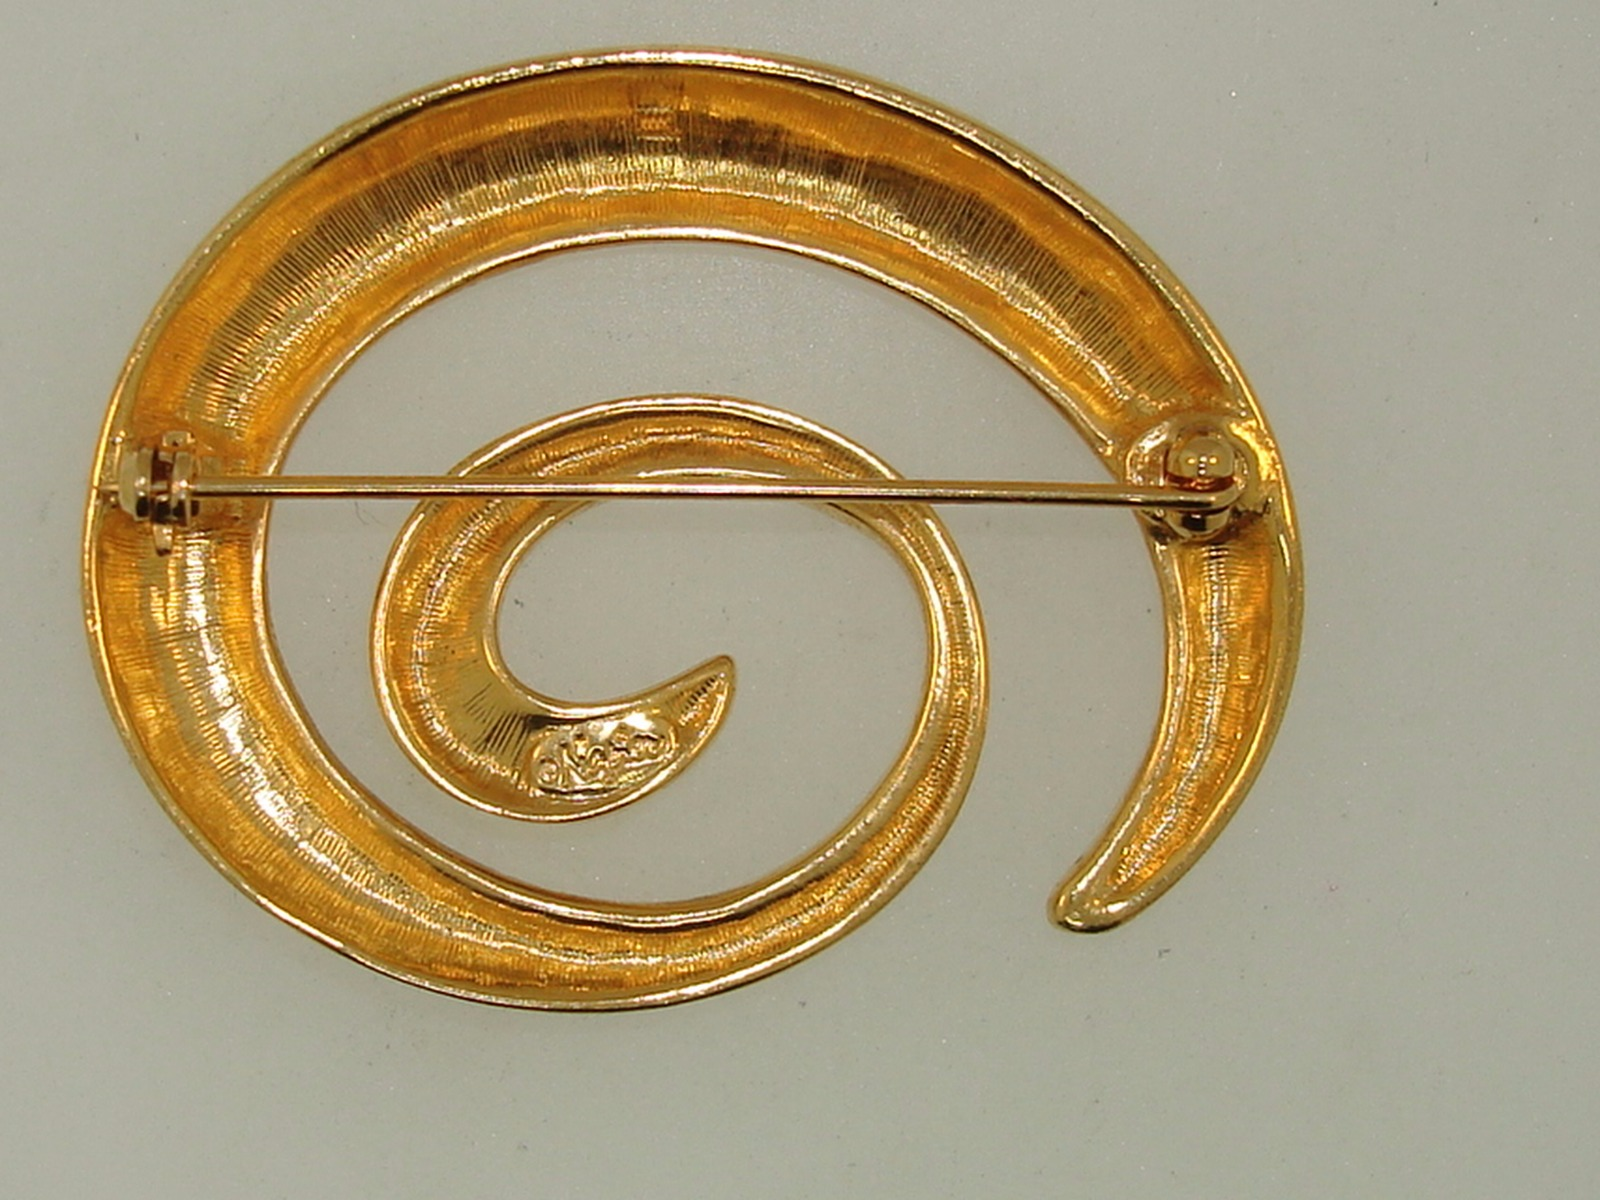 VINTAGE NAPIER GOLD SWIRL PIN/BROOCH! - Federal Coin Exchange